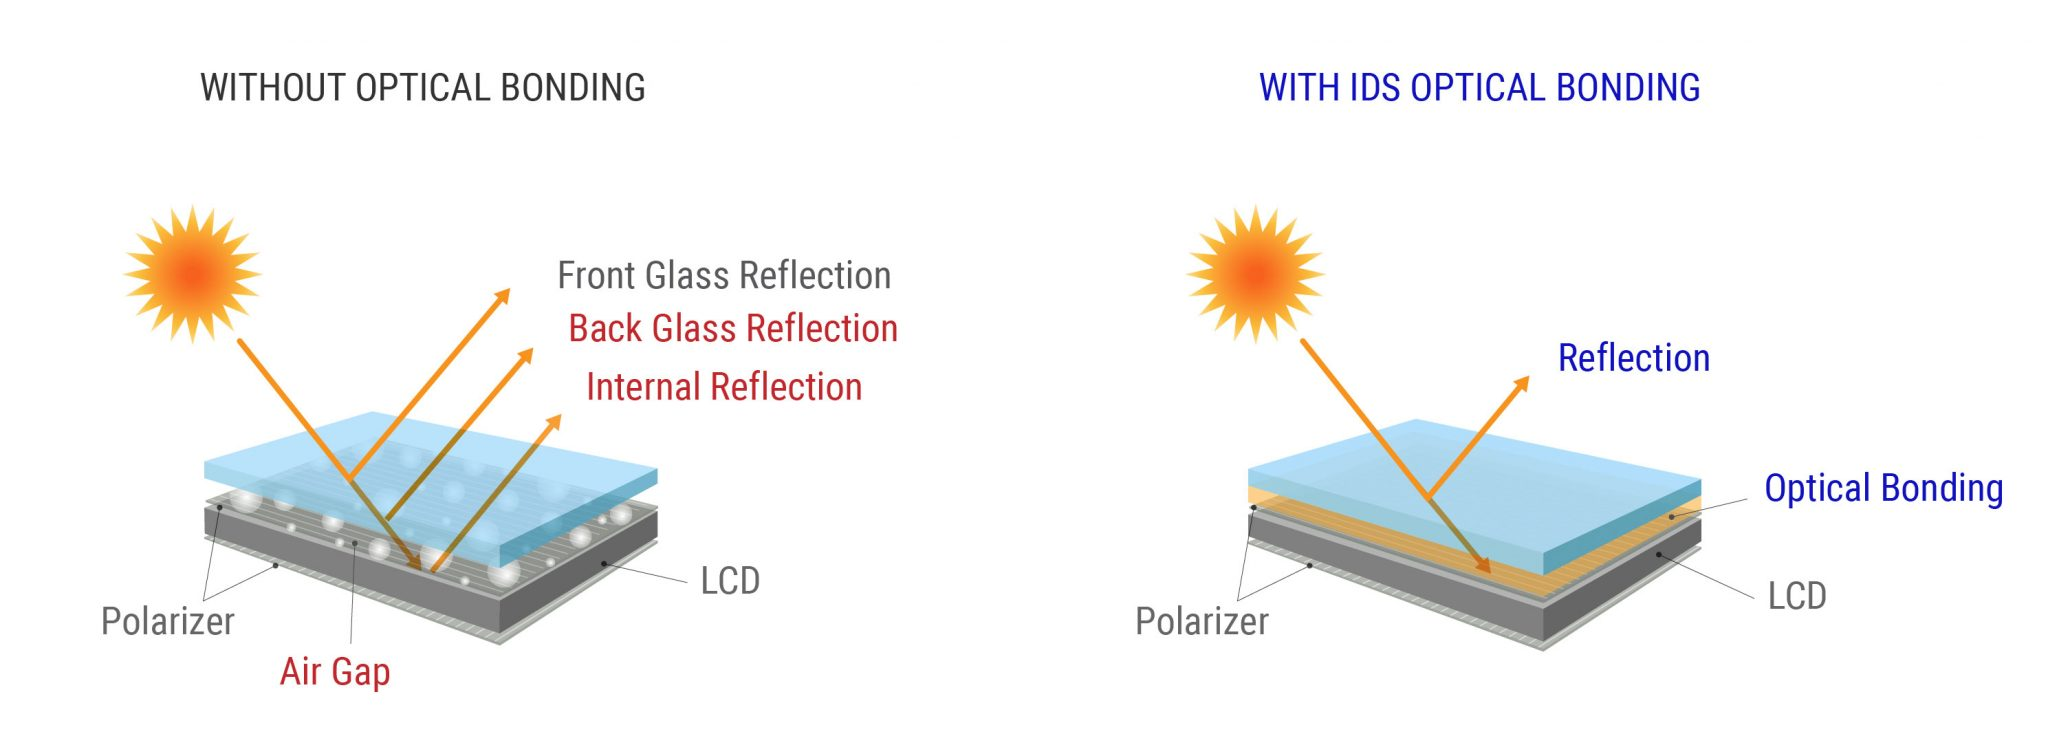 with and without optical bonding affect the screen simulation picture